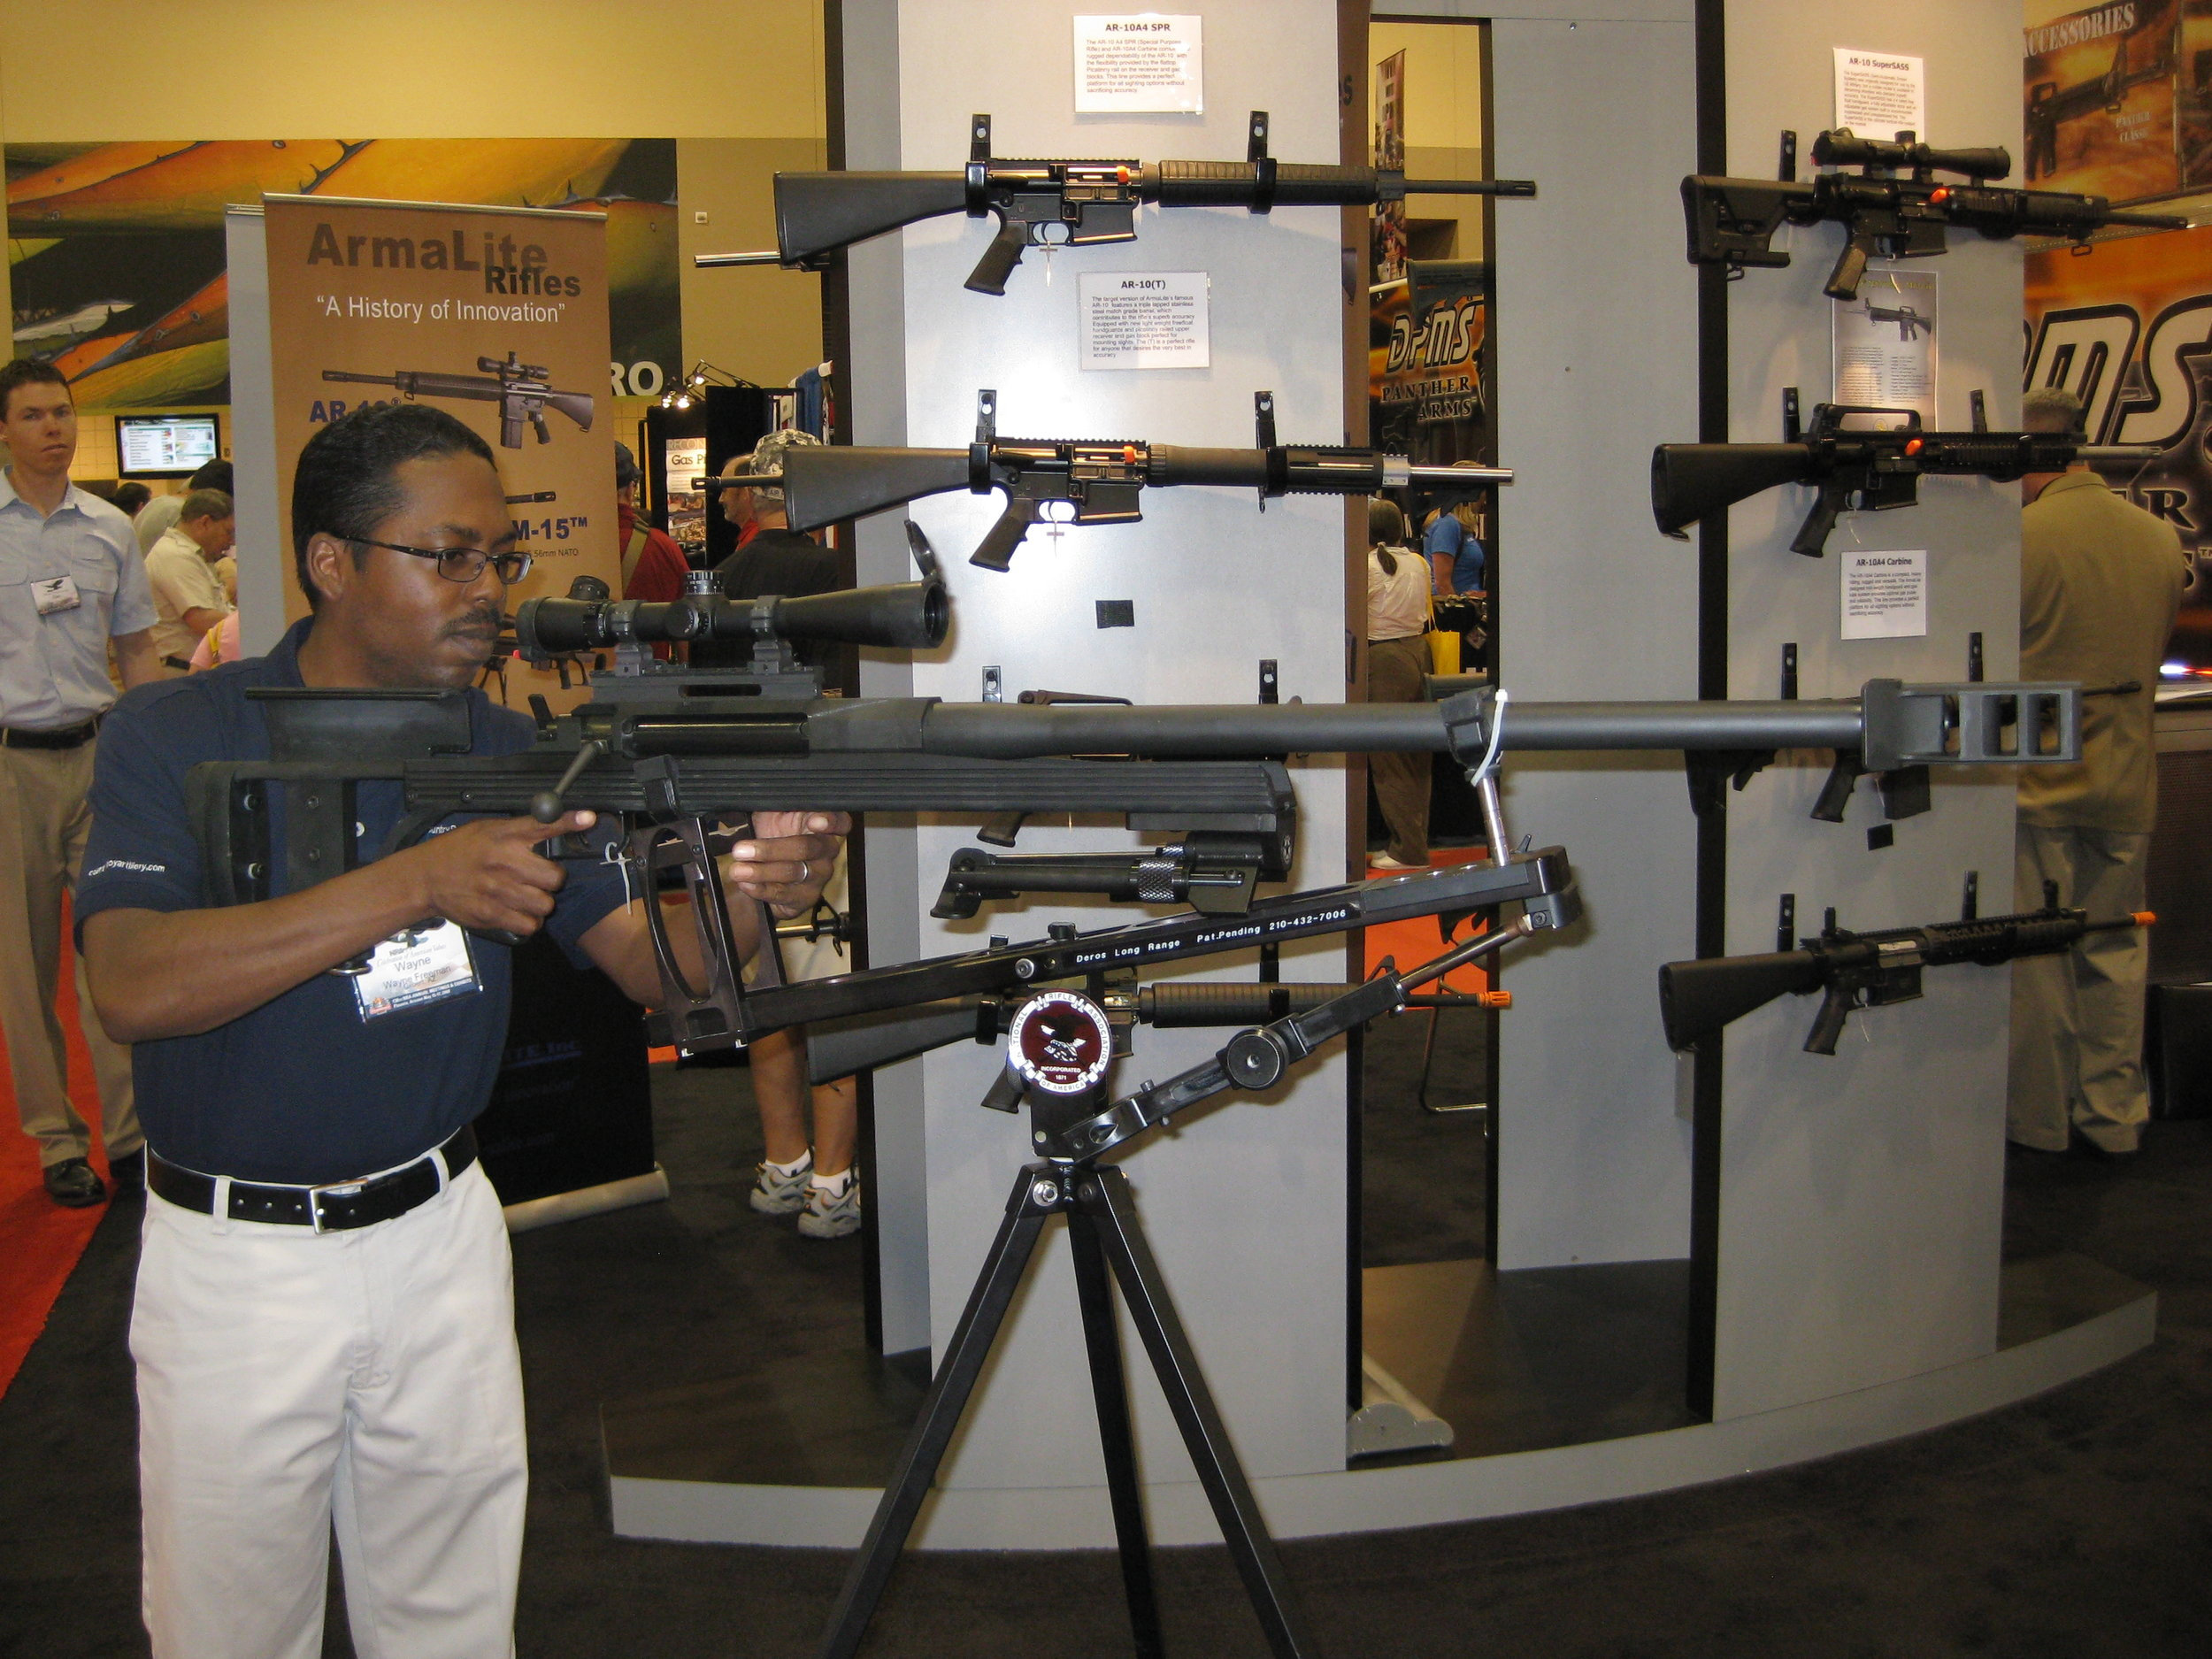 You won't find a display like this in the  Average Gun Shop